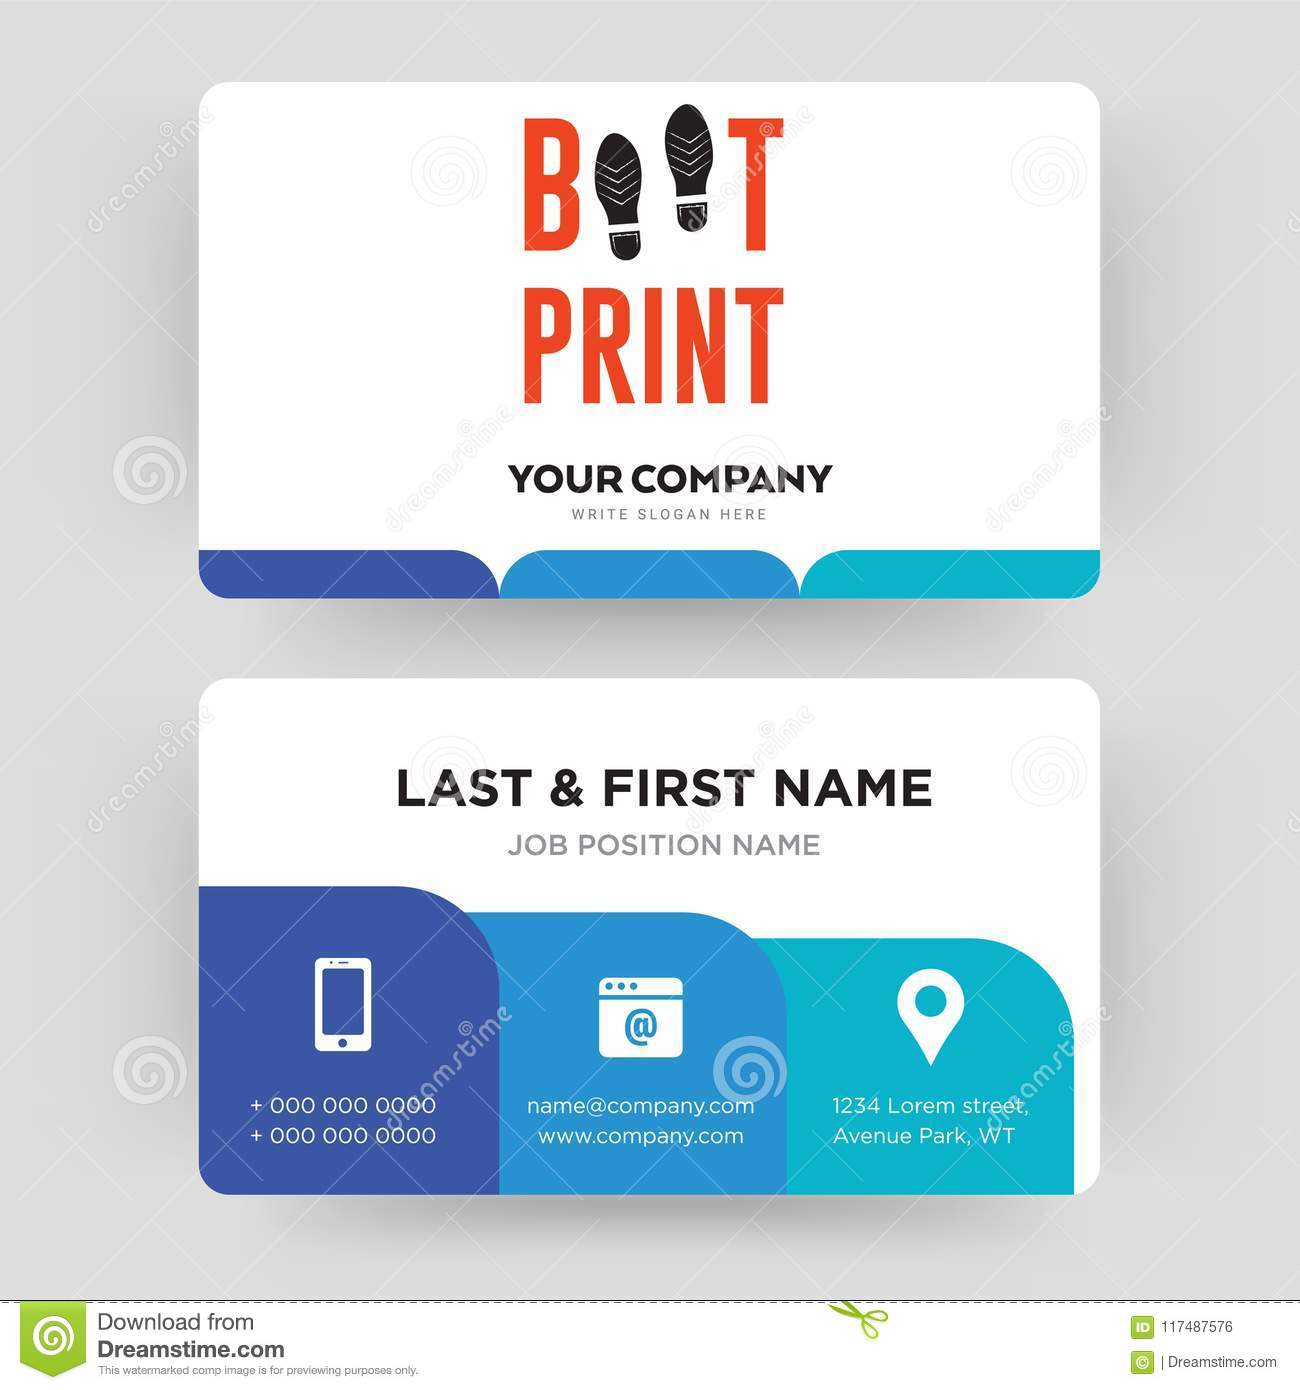 Boot print business card design template visiting for your company download boot print business card design template visiting for your company stock photo image accmission Gallery